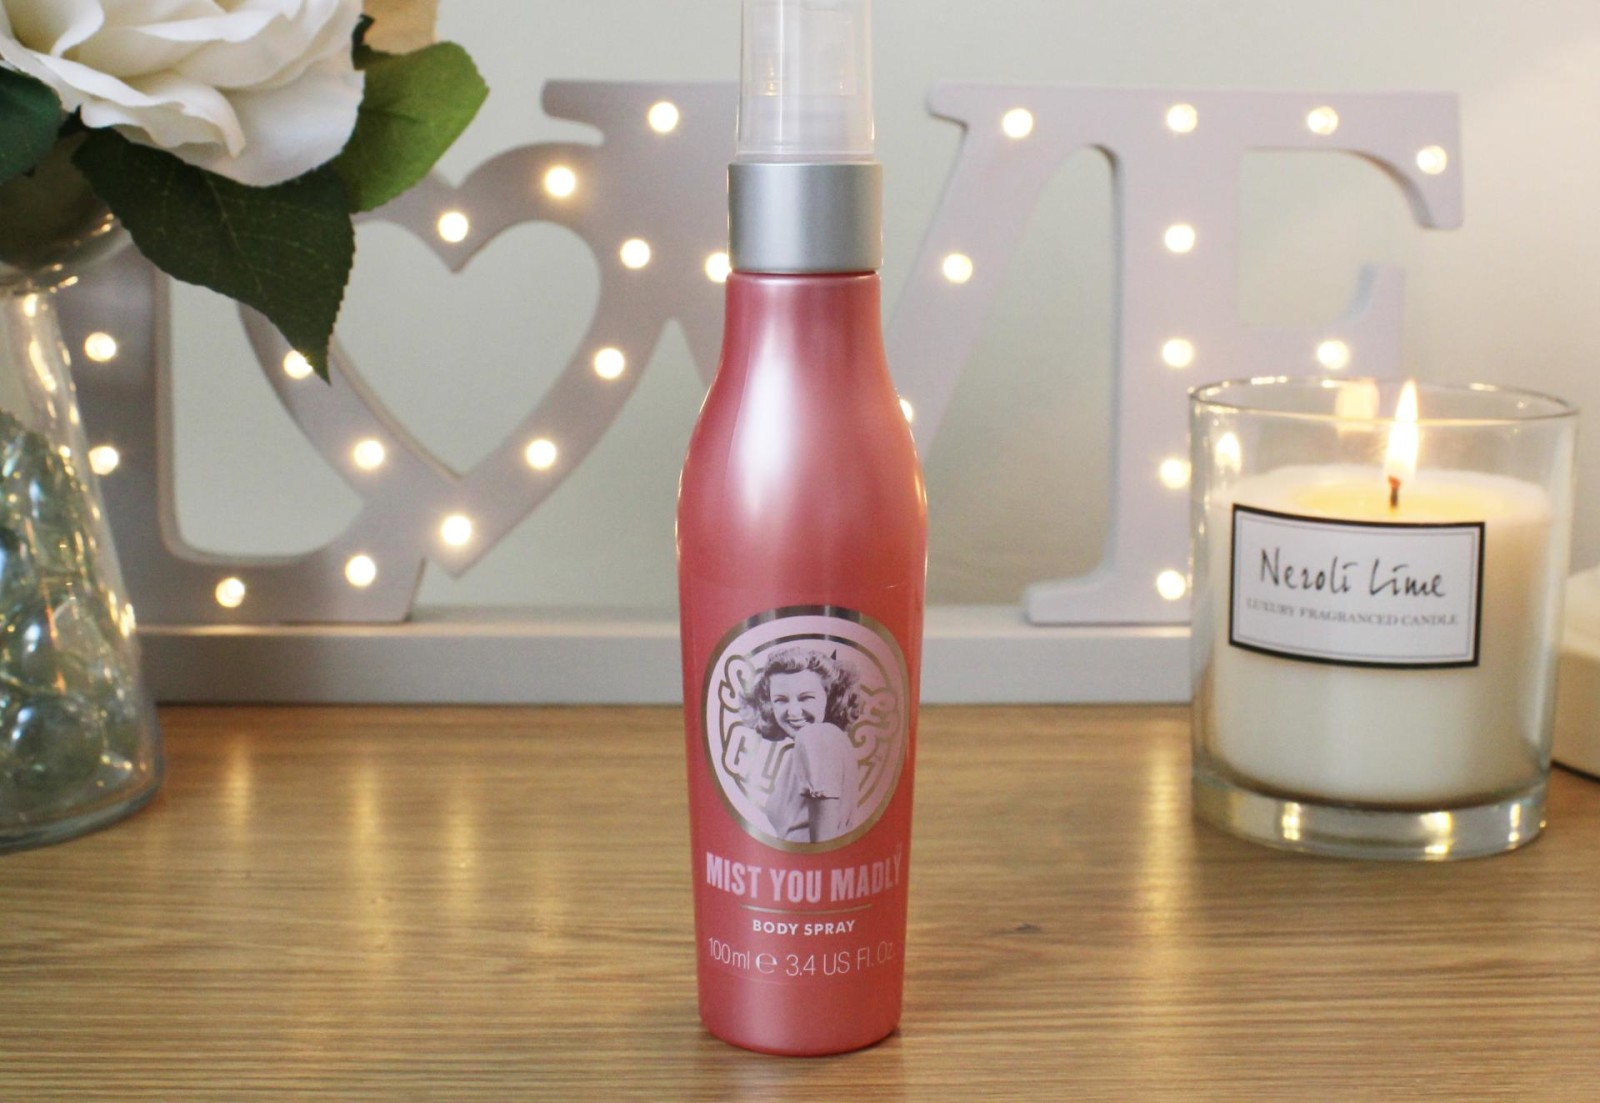 Soap and Glory Body Sprays Mist You Madly